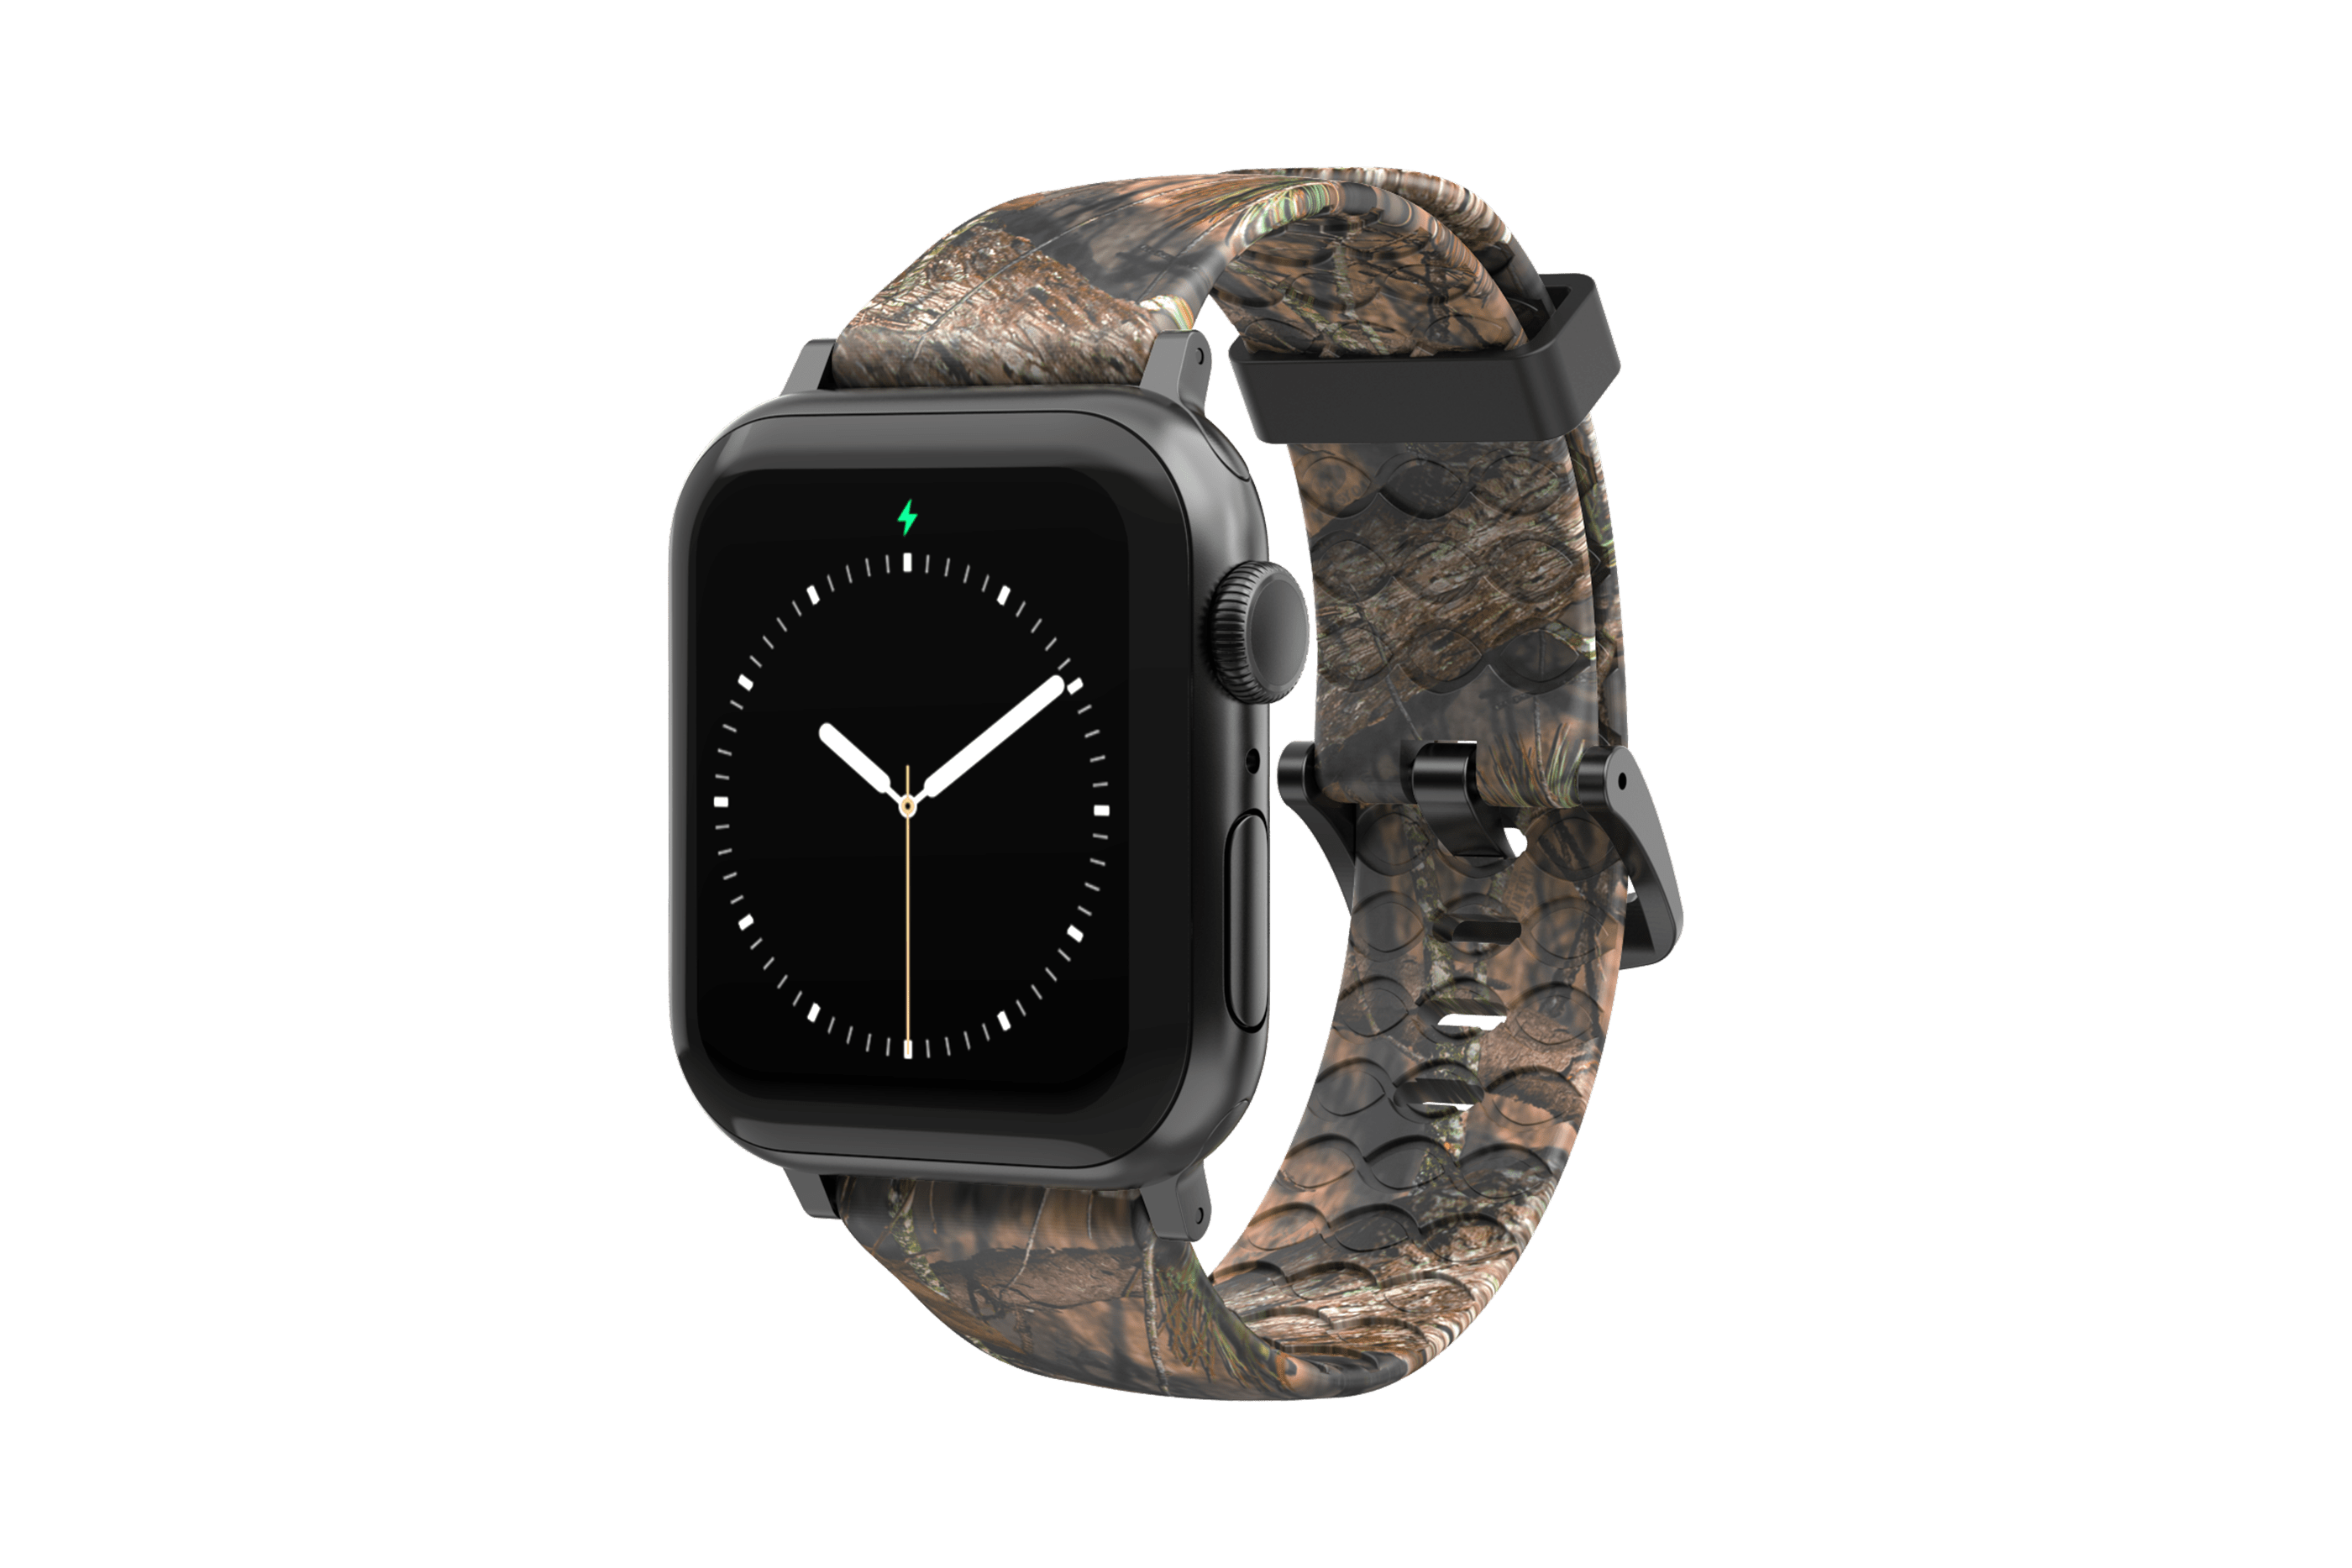 Mossy Oak Breakup - Apple Watch Band with gray hardware viewed front on